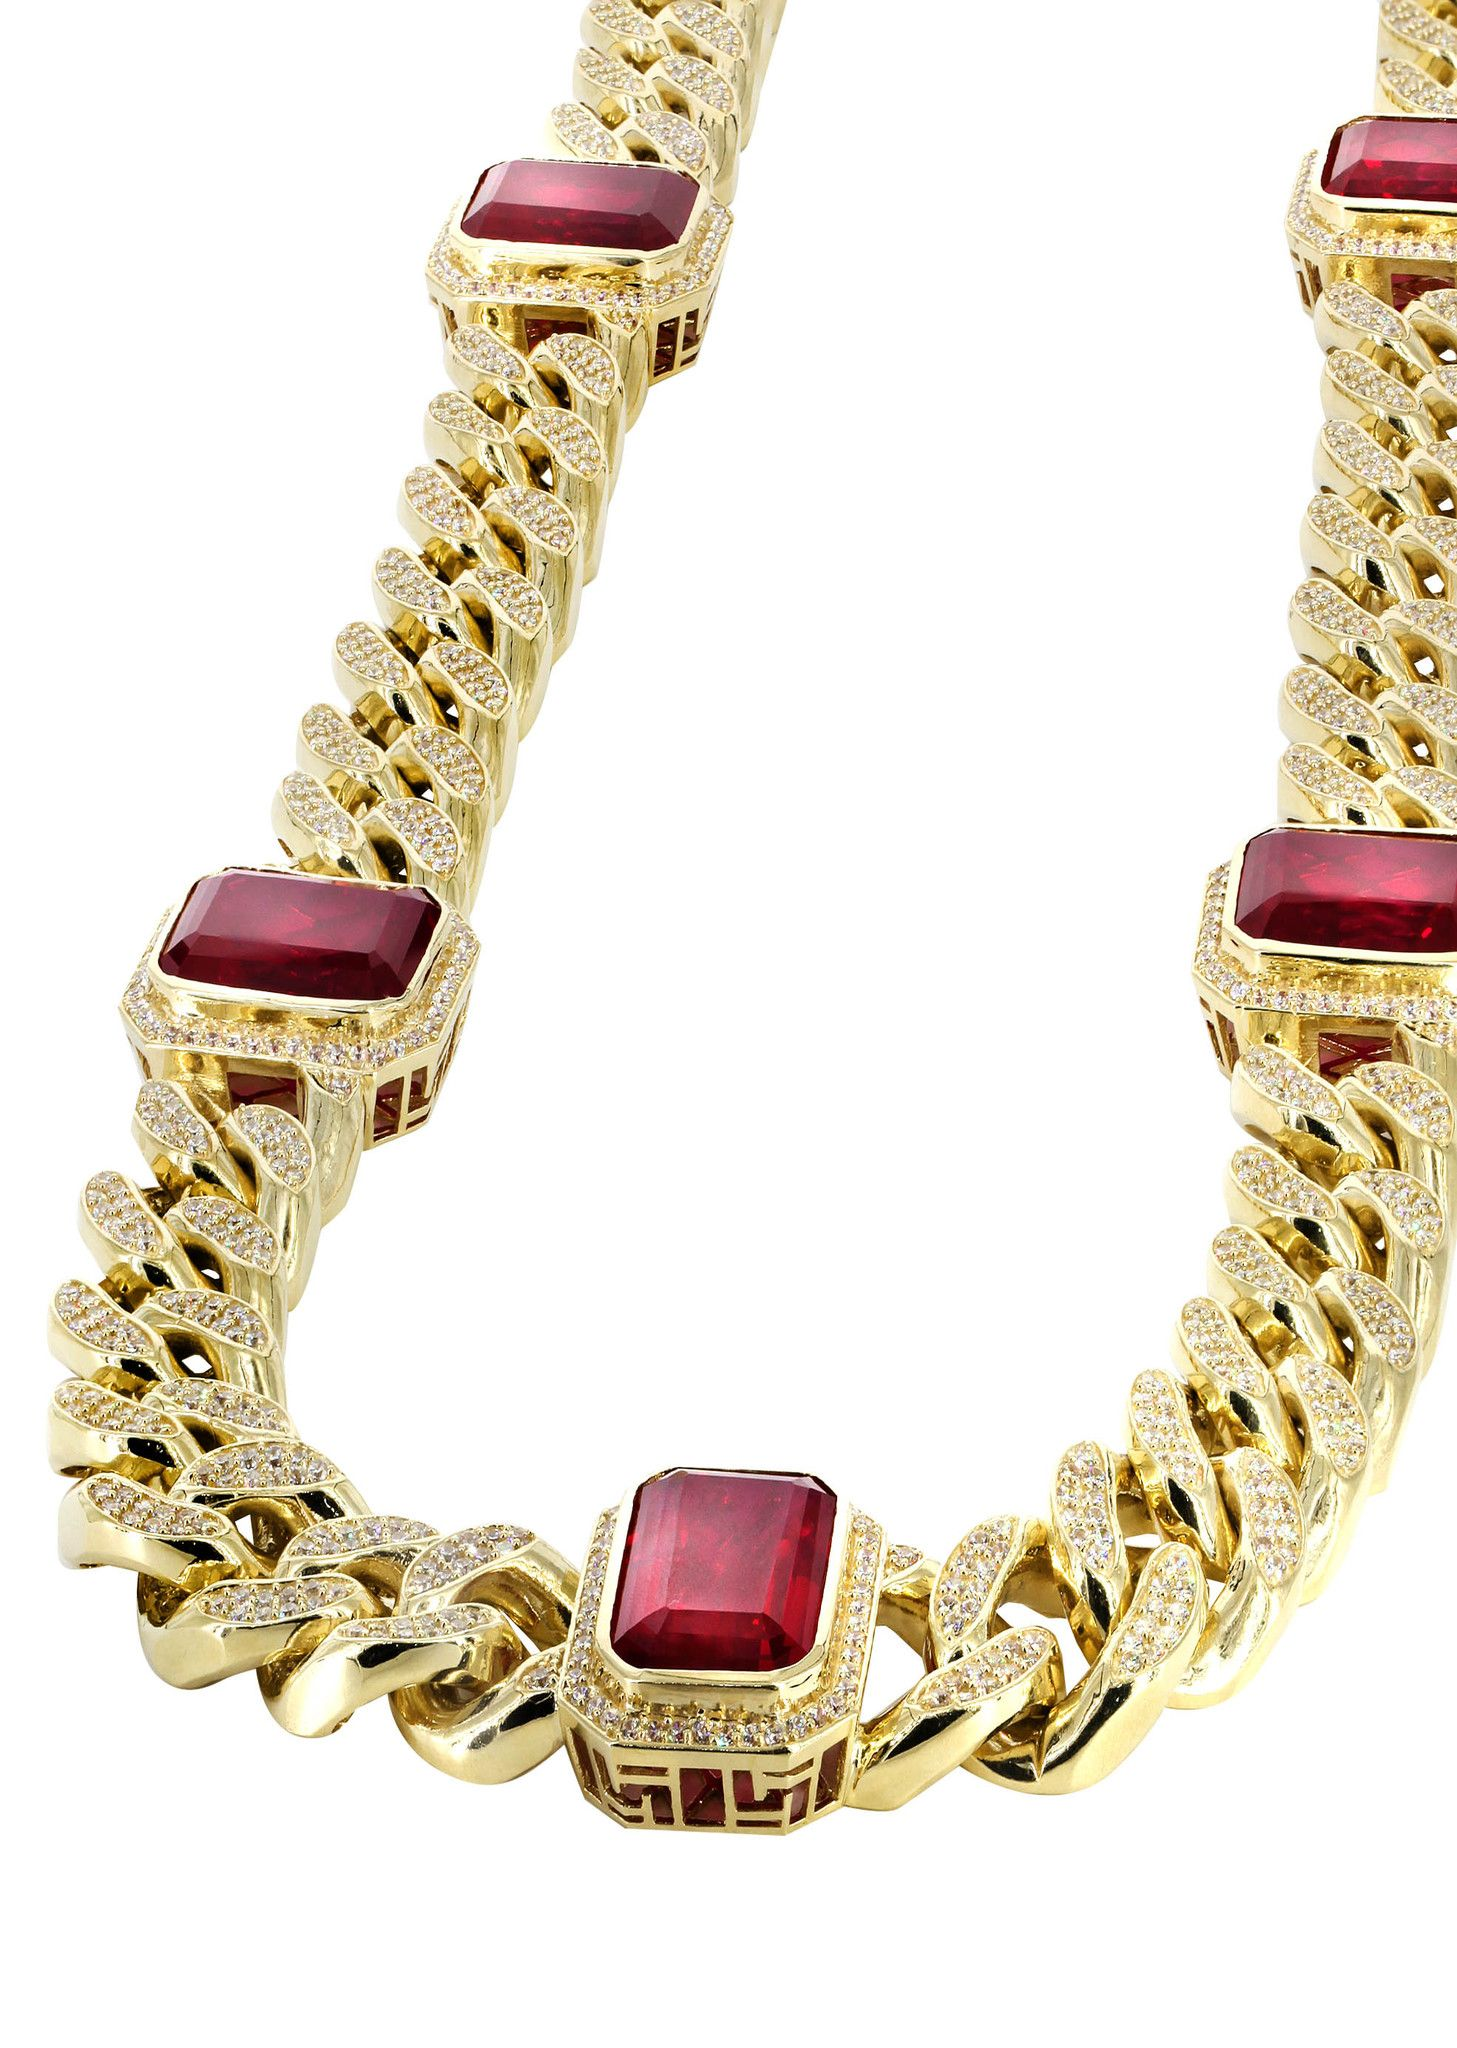 Solid Mens Ruby Cz Miami Cuban Link Chain 10k Yellow Gold Gold Chains For Men Chains For Men Black Hills Gold Jewelry